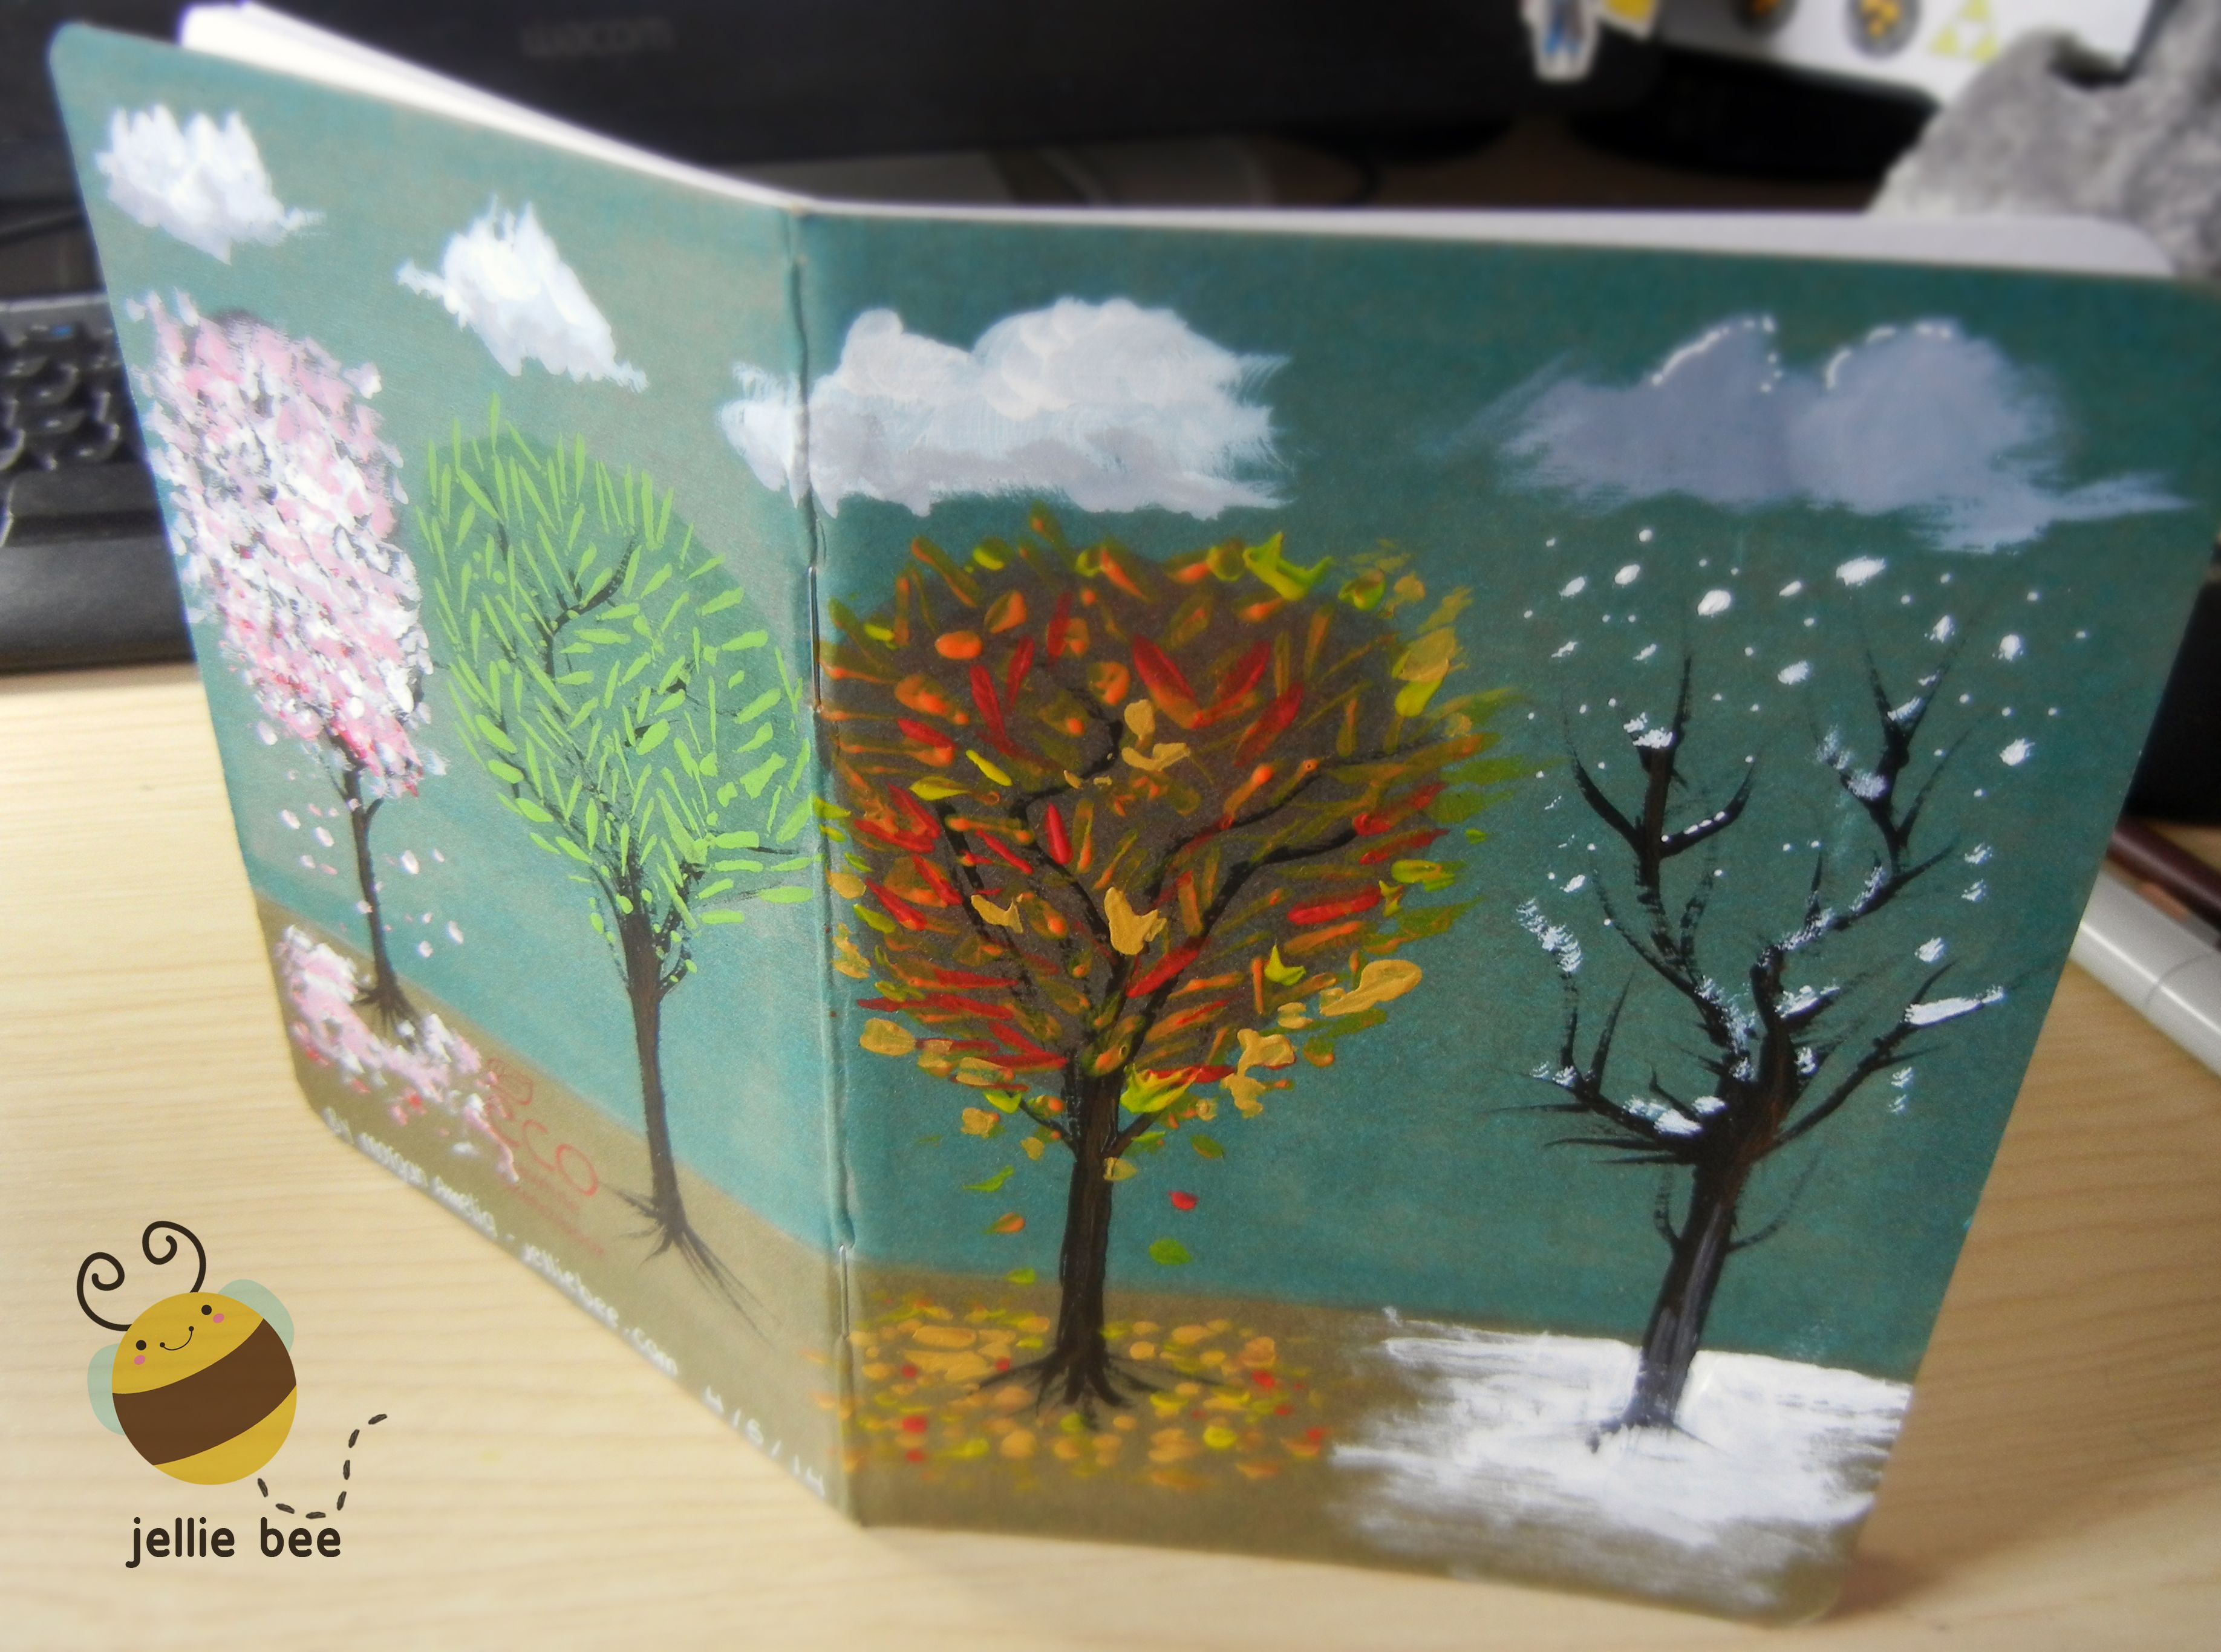 Fully painted customised sketchbook. The client wasn't expecting it to be painted but was very pleased!